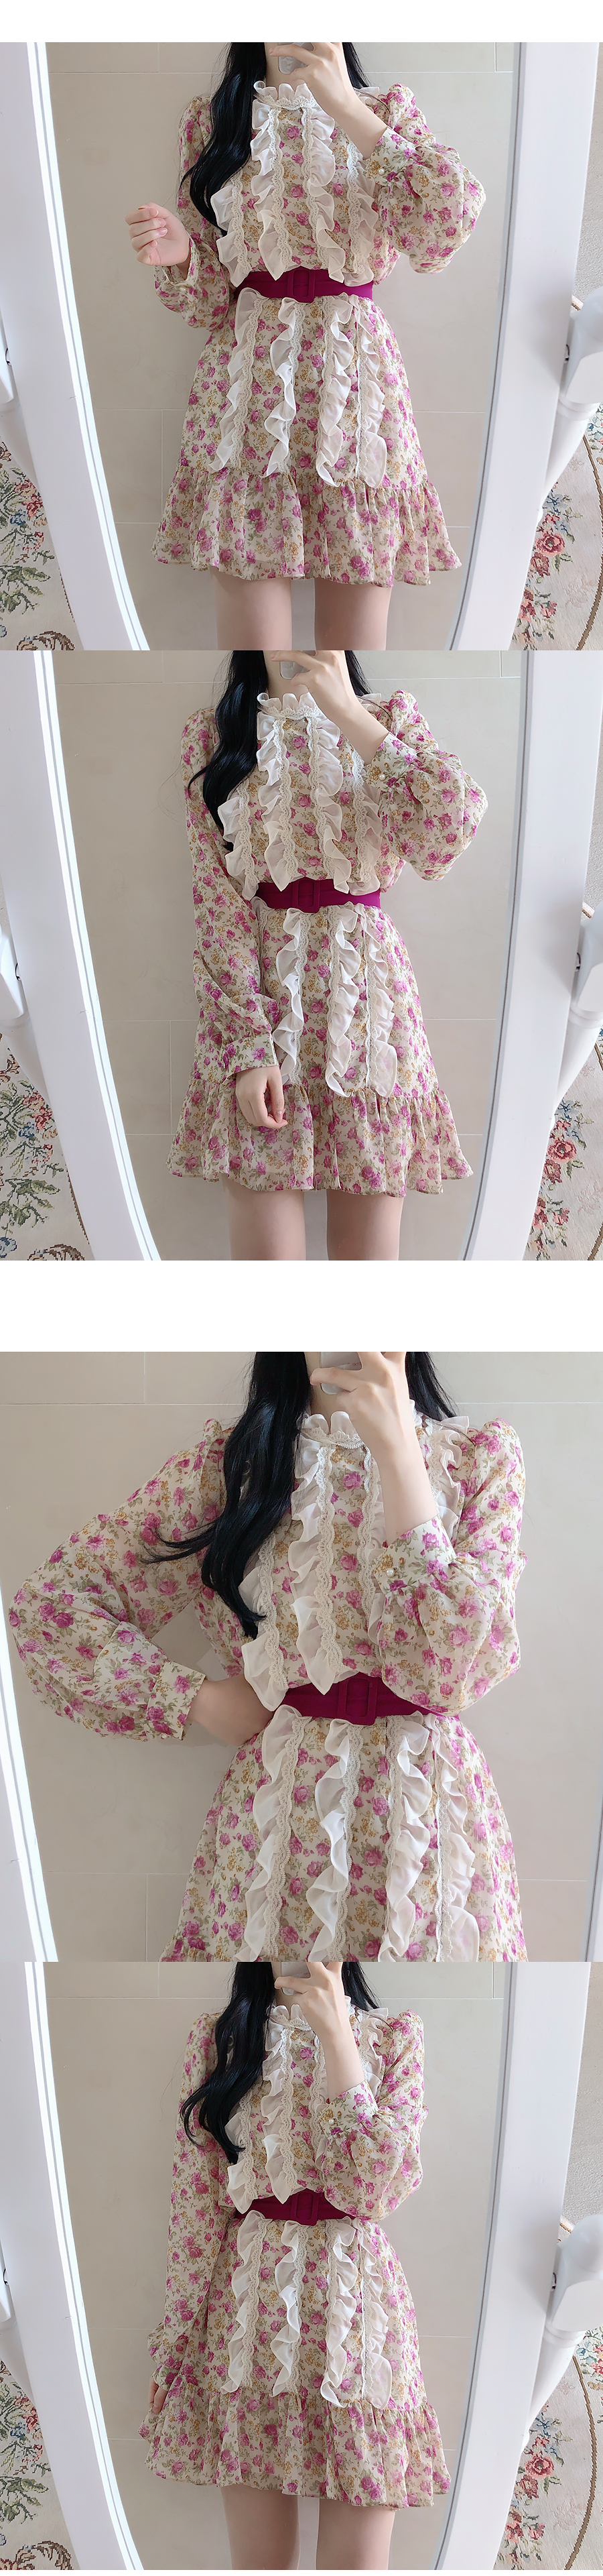 Unibell floral ruffle dress